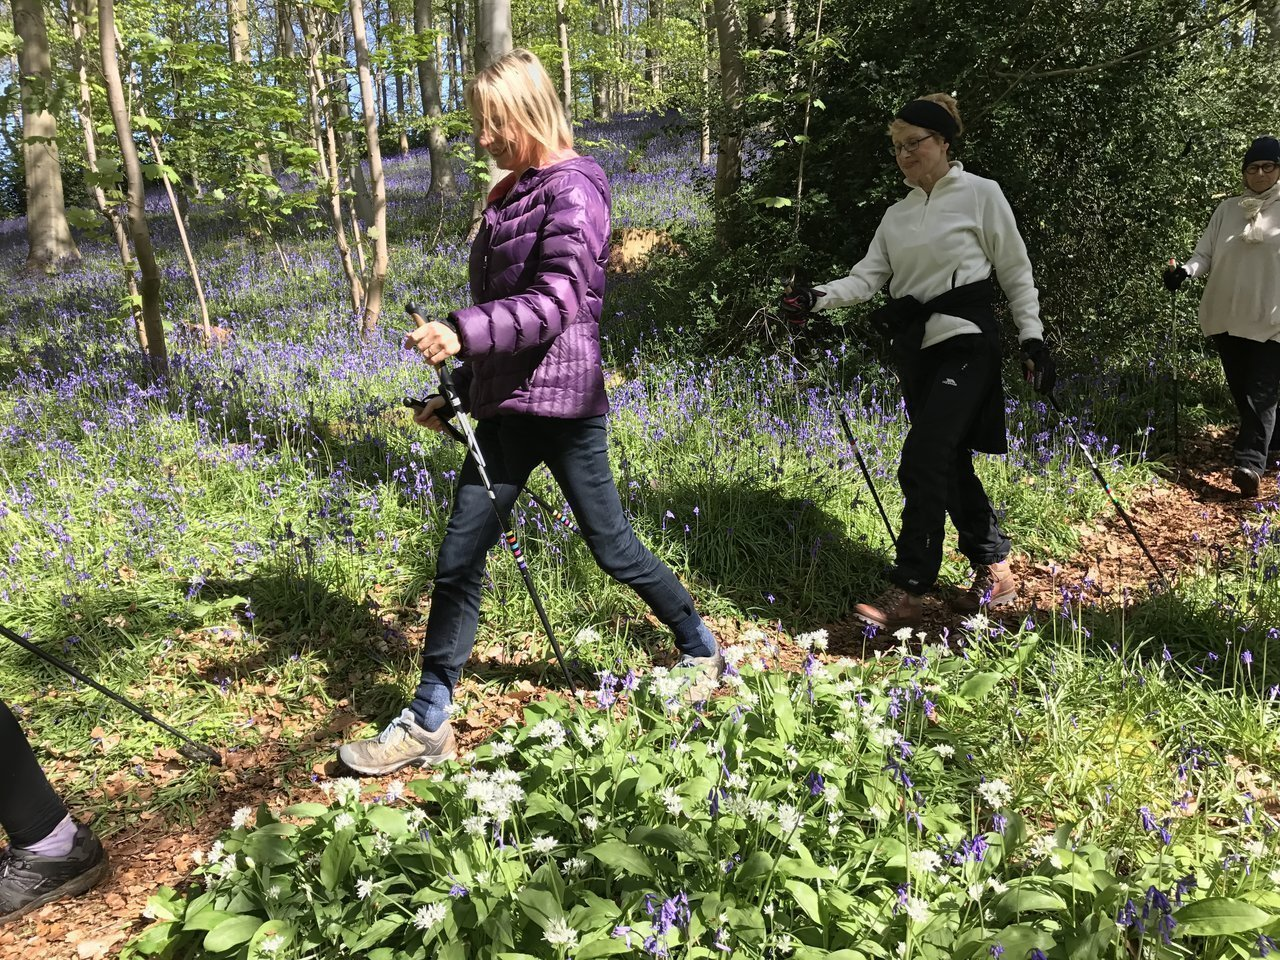 What to wear Nordic walking in the spring/summer, nutritional advice for pollen allergy sufferers and bluebell walks